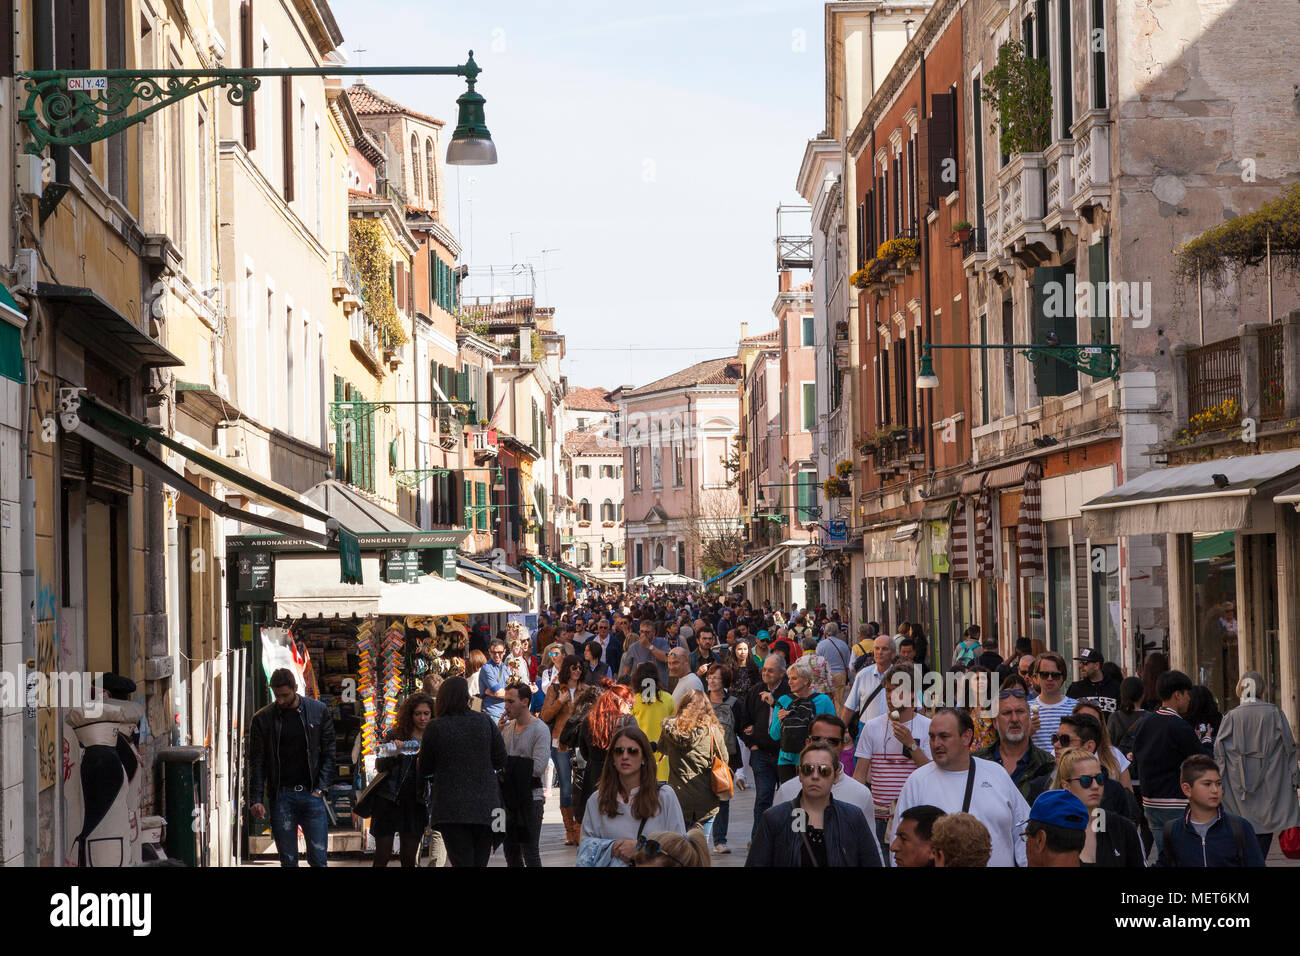 Crowd with hundreds of tourists Strada Nova, Cannaregio, Venice, Veneto, Italy in a low season period in early spring. Unsustainable tourism, overcrow - Stock Image